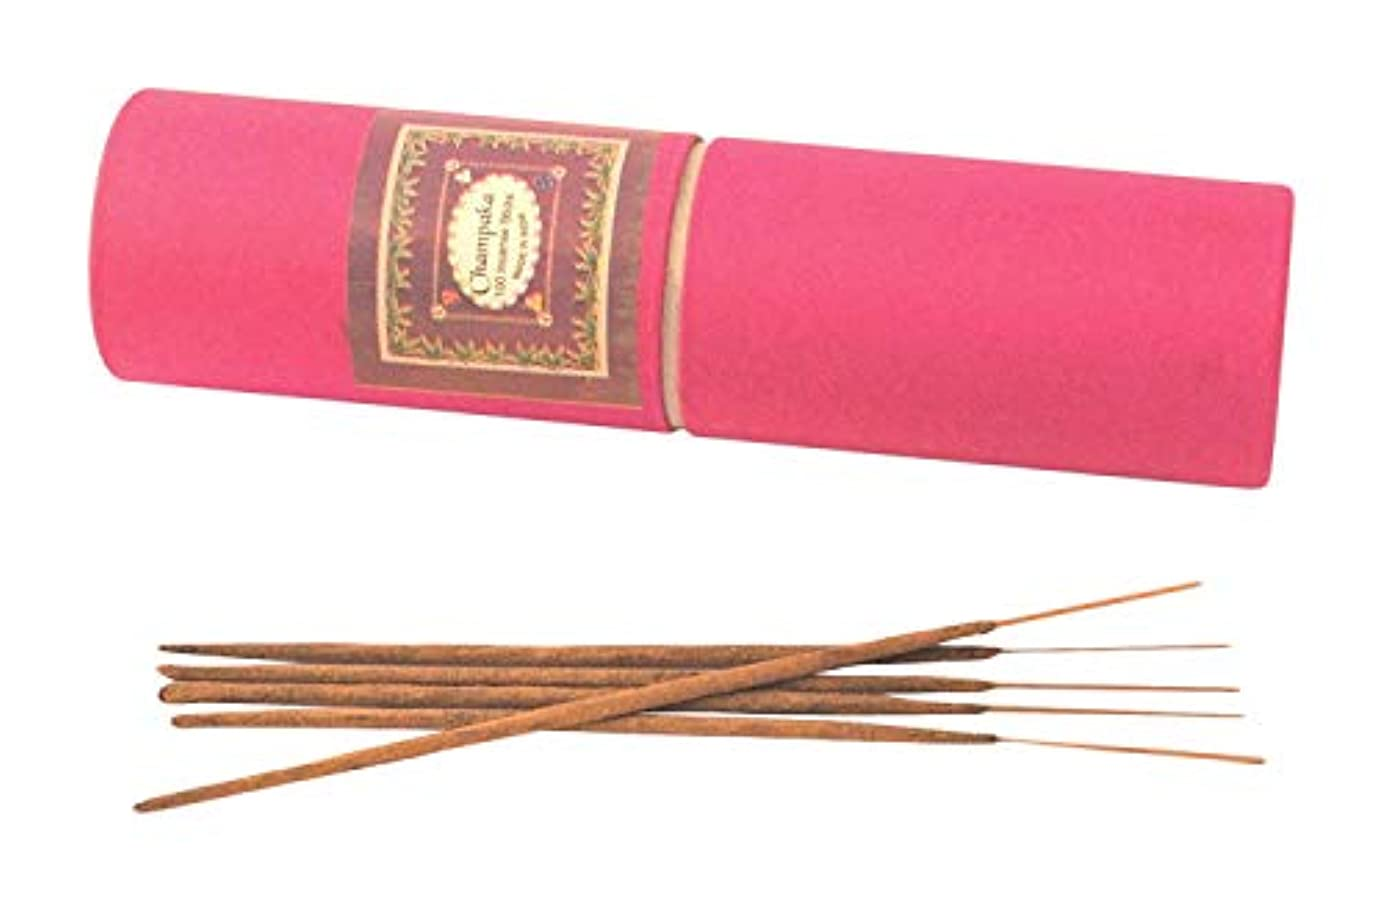 物質火曜日ふりをするMy Earth Store Champaka Hand Made Incense Stick (4 cm x 4 cm x 24 cm, Brown)